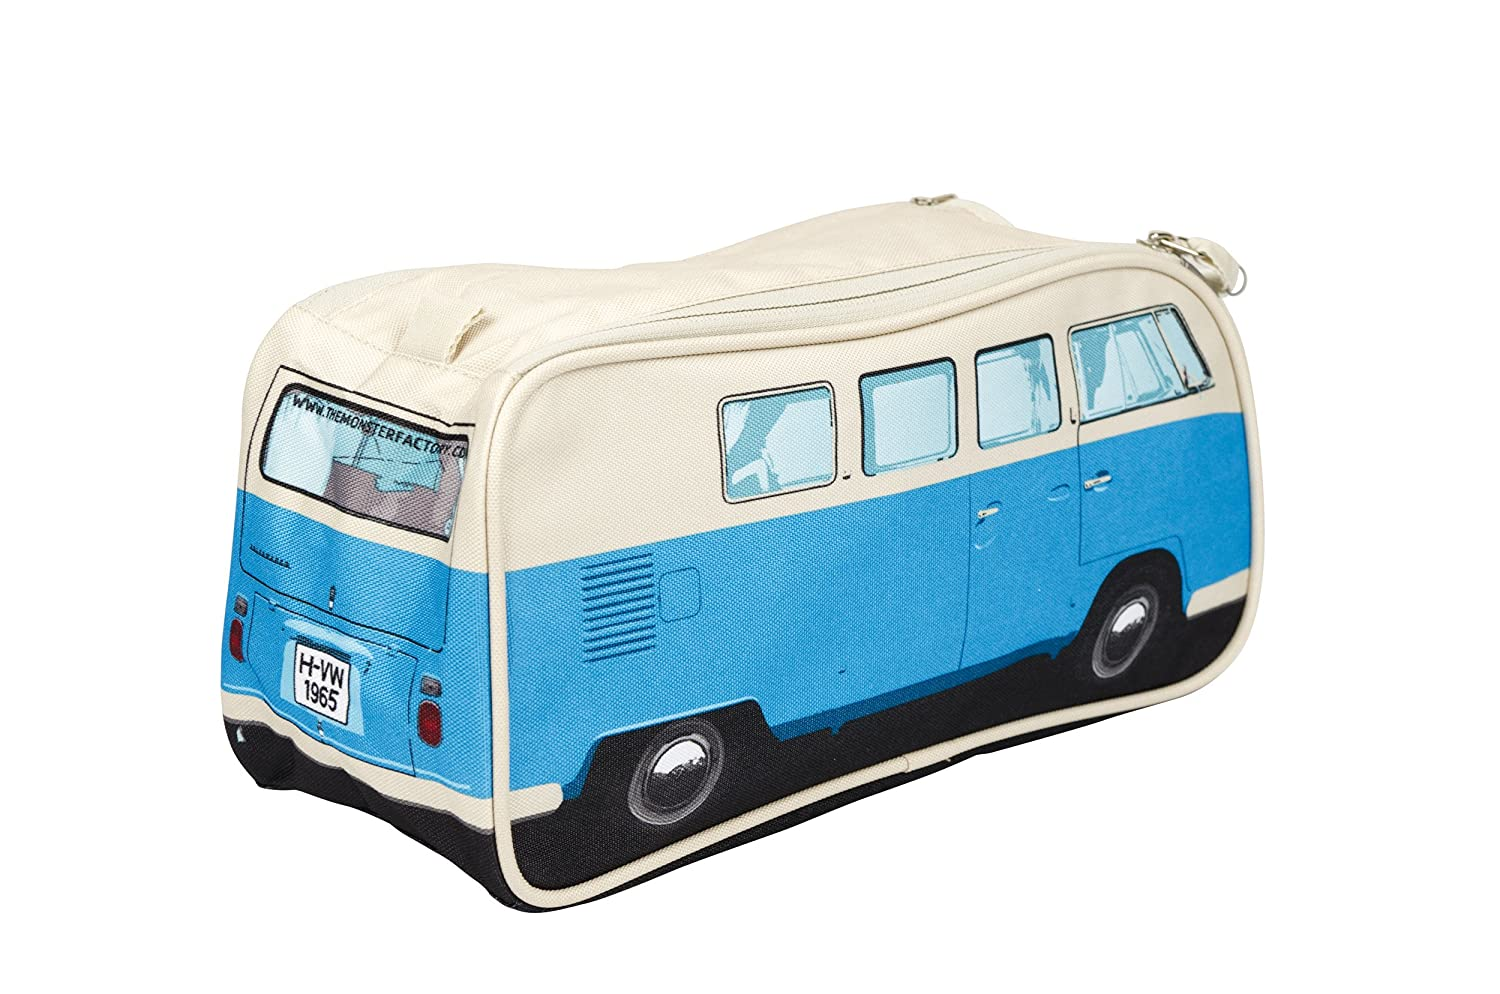 14aebf5b8ee0 Amazon.com  The Monster Factory VW Volkswagen T1 Camper Van Toiletry Wash  Bag - Blue - Multiple Color Options Available  Health   Personal Care